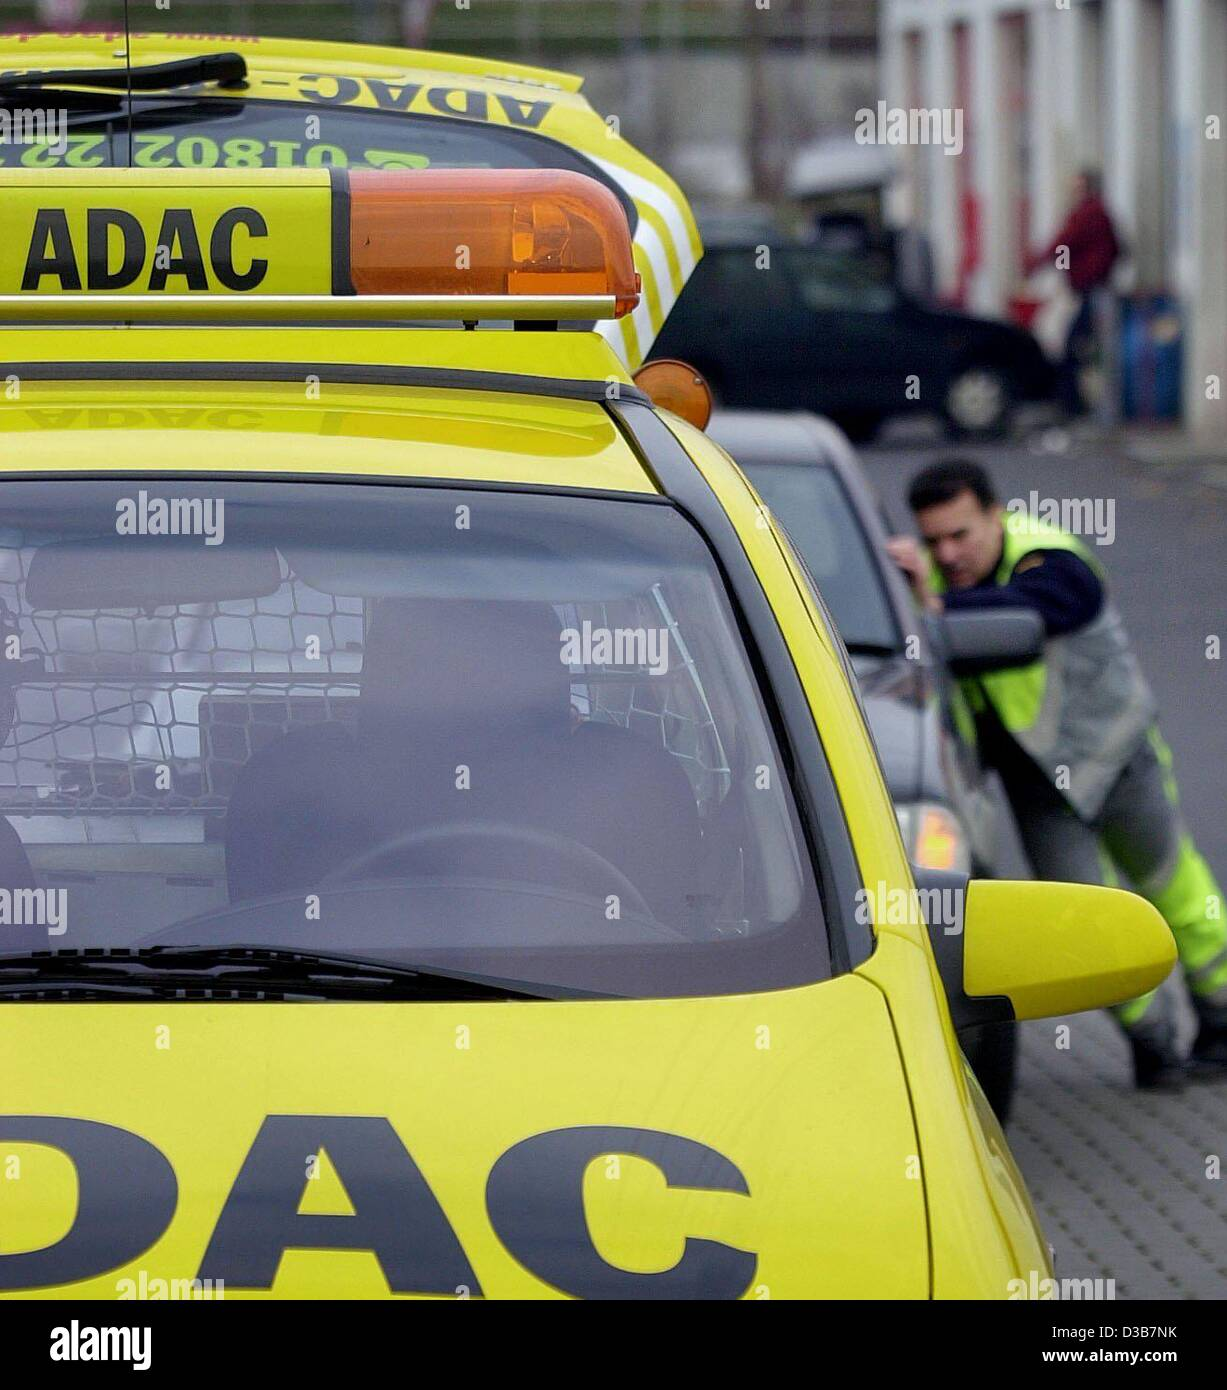 dpa) - Peter Kaestner of the German auto club ADAC gives